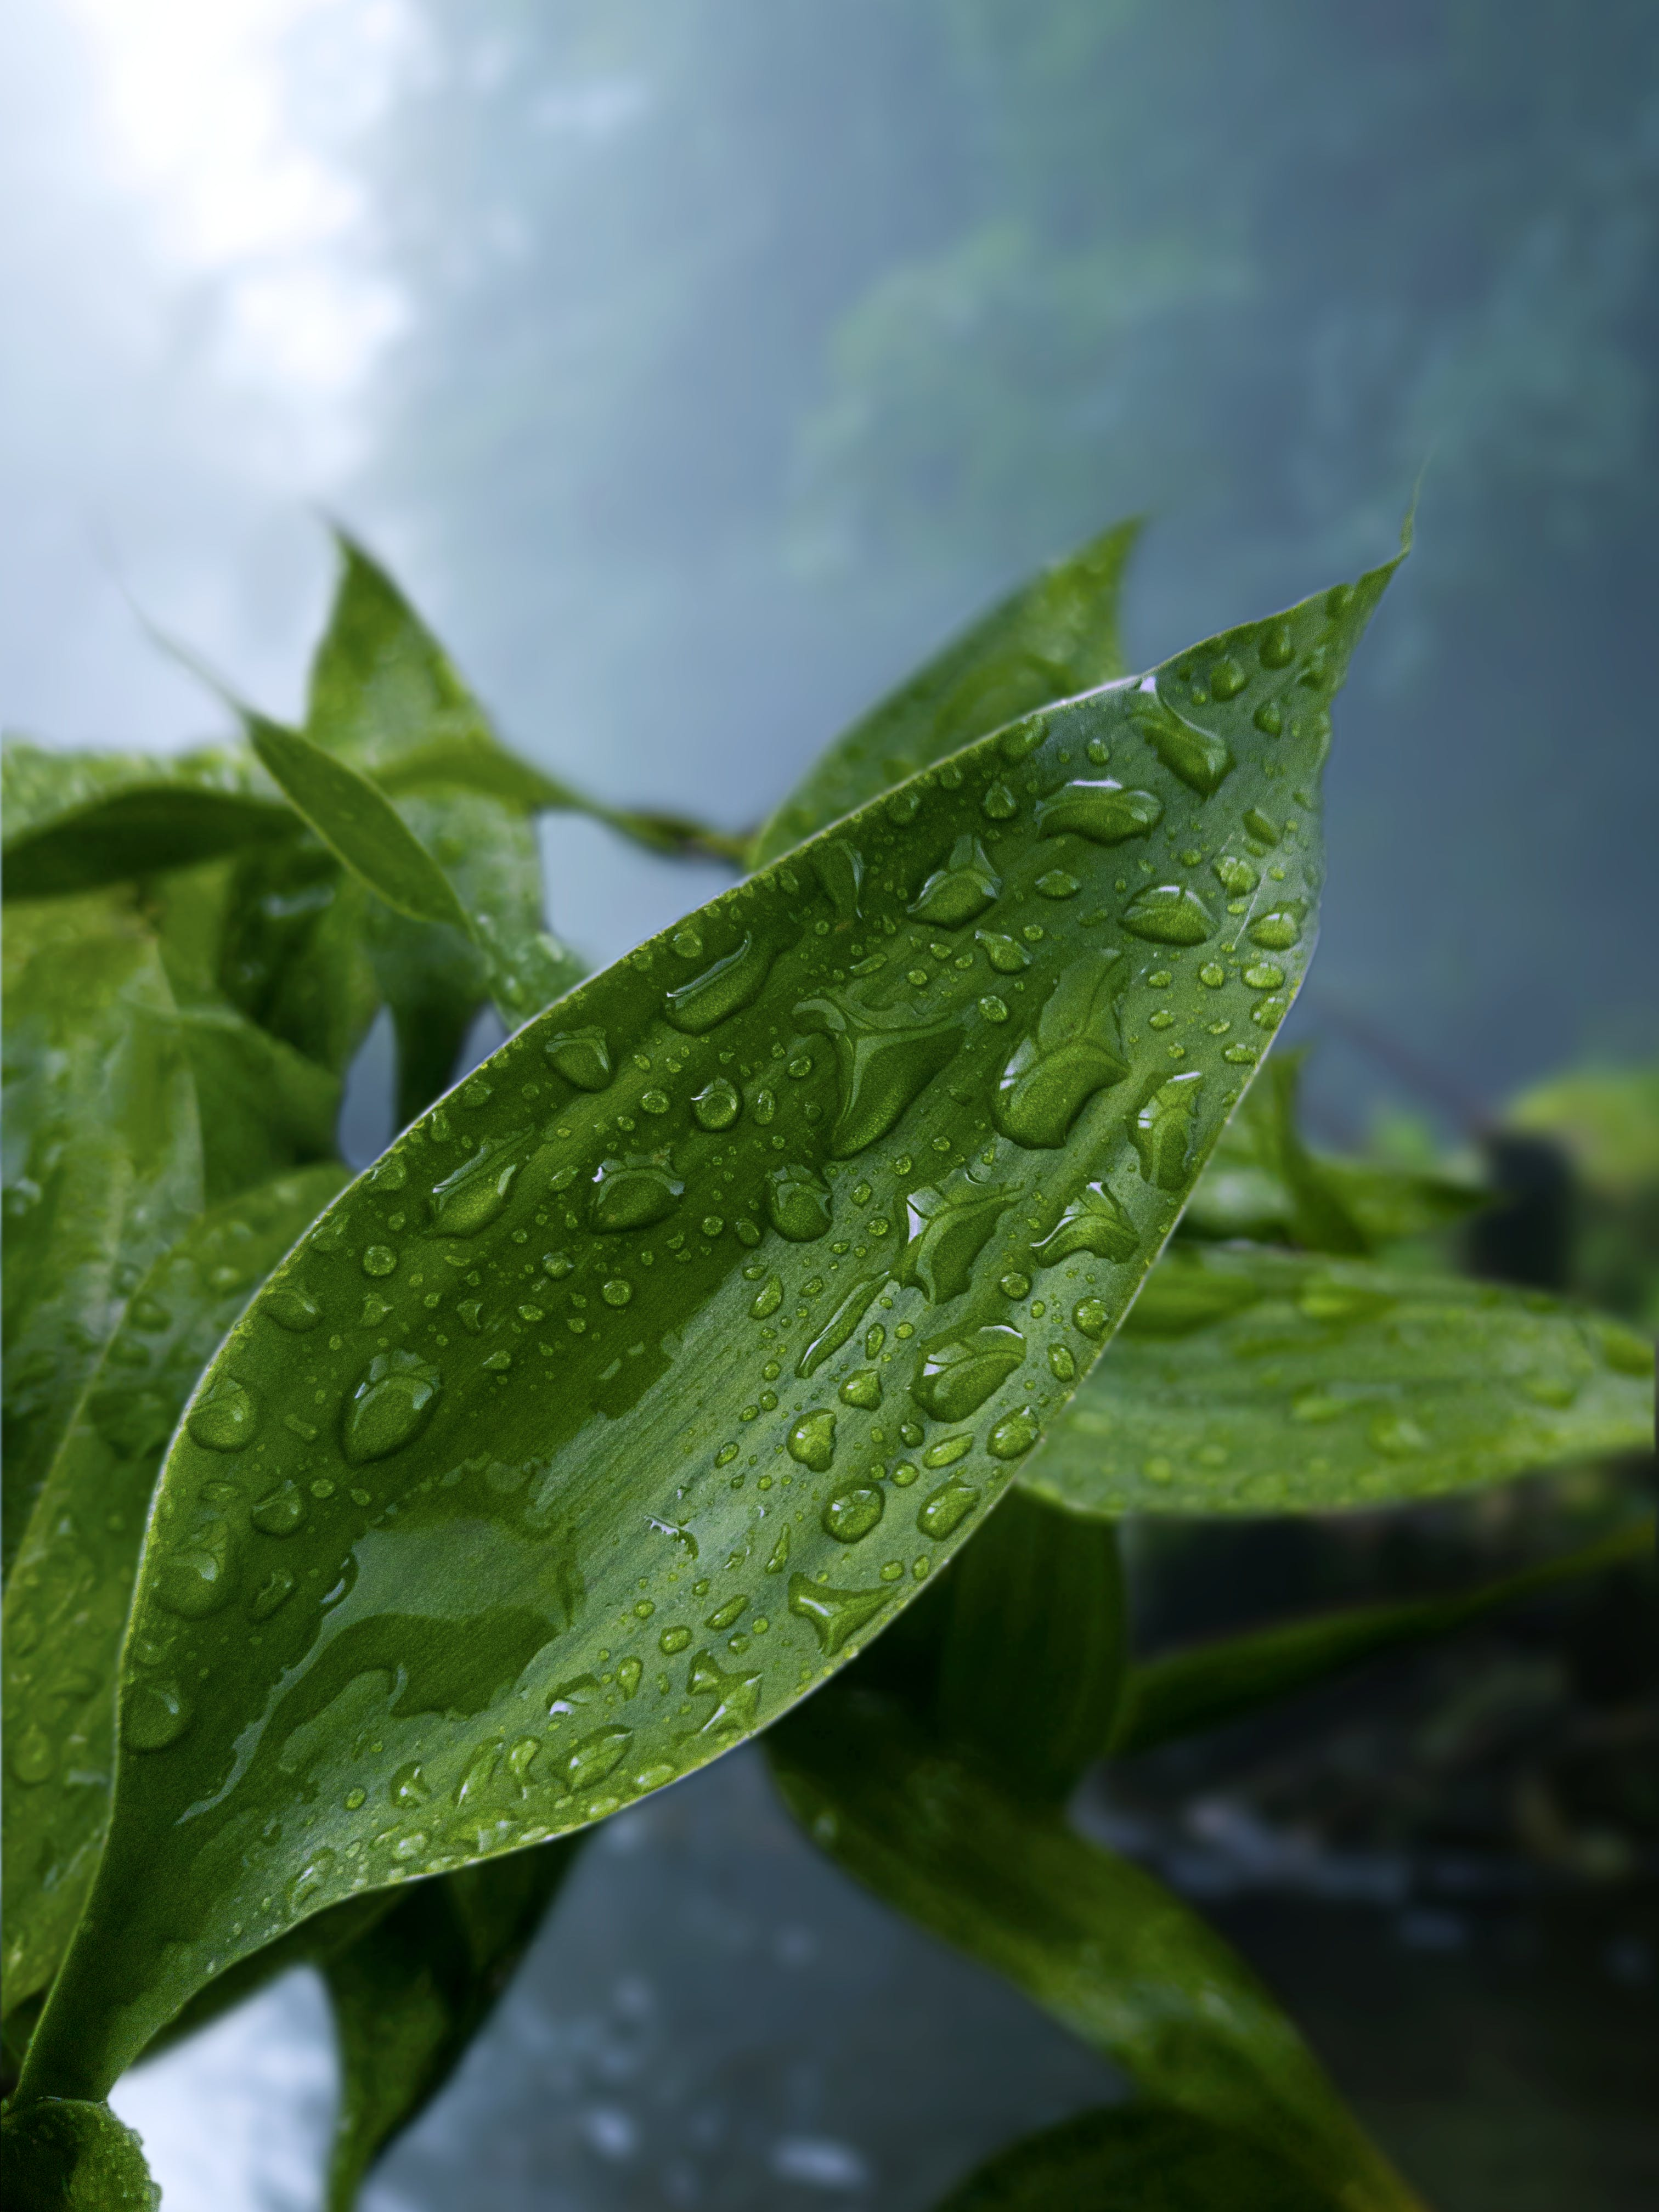 Green Leaf Plant With Droplets